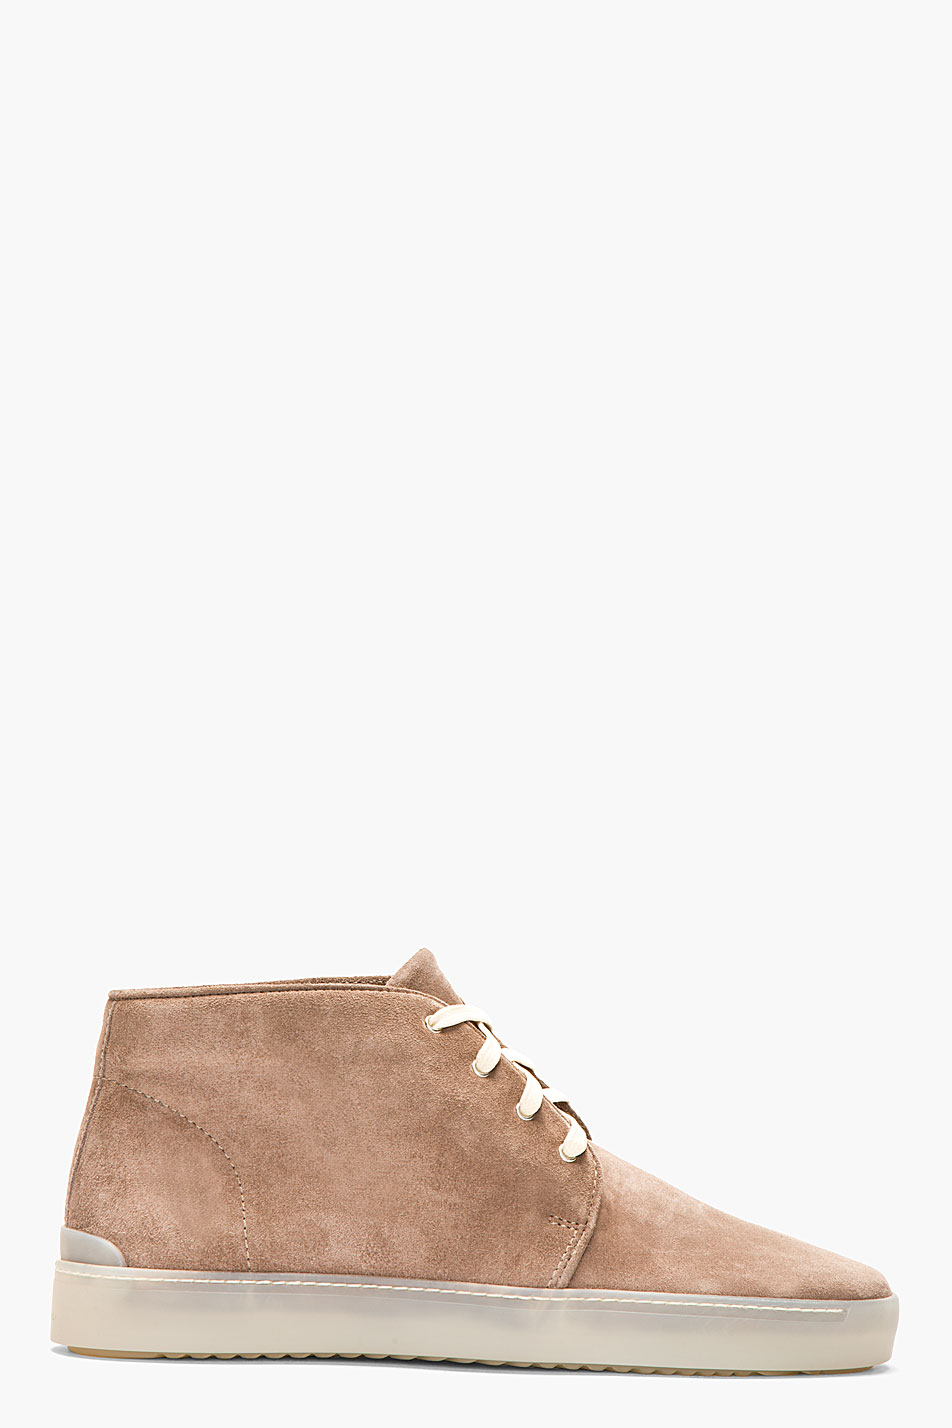 rag and bone taupe suede desert sneakers